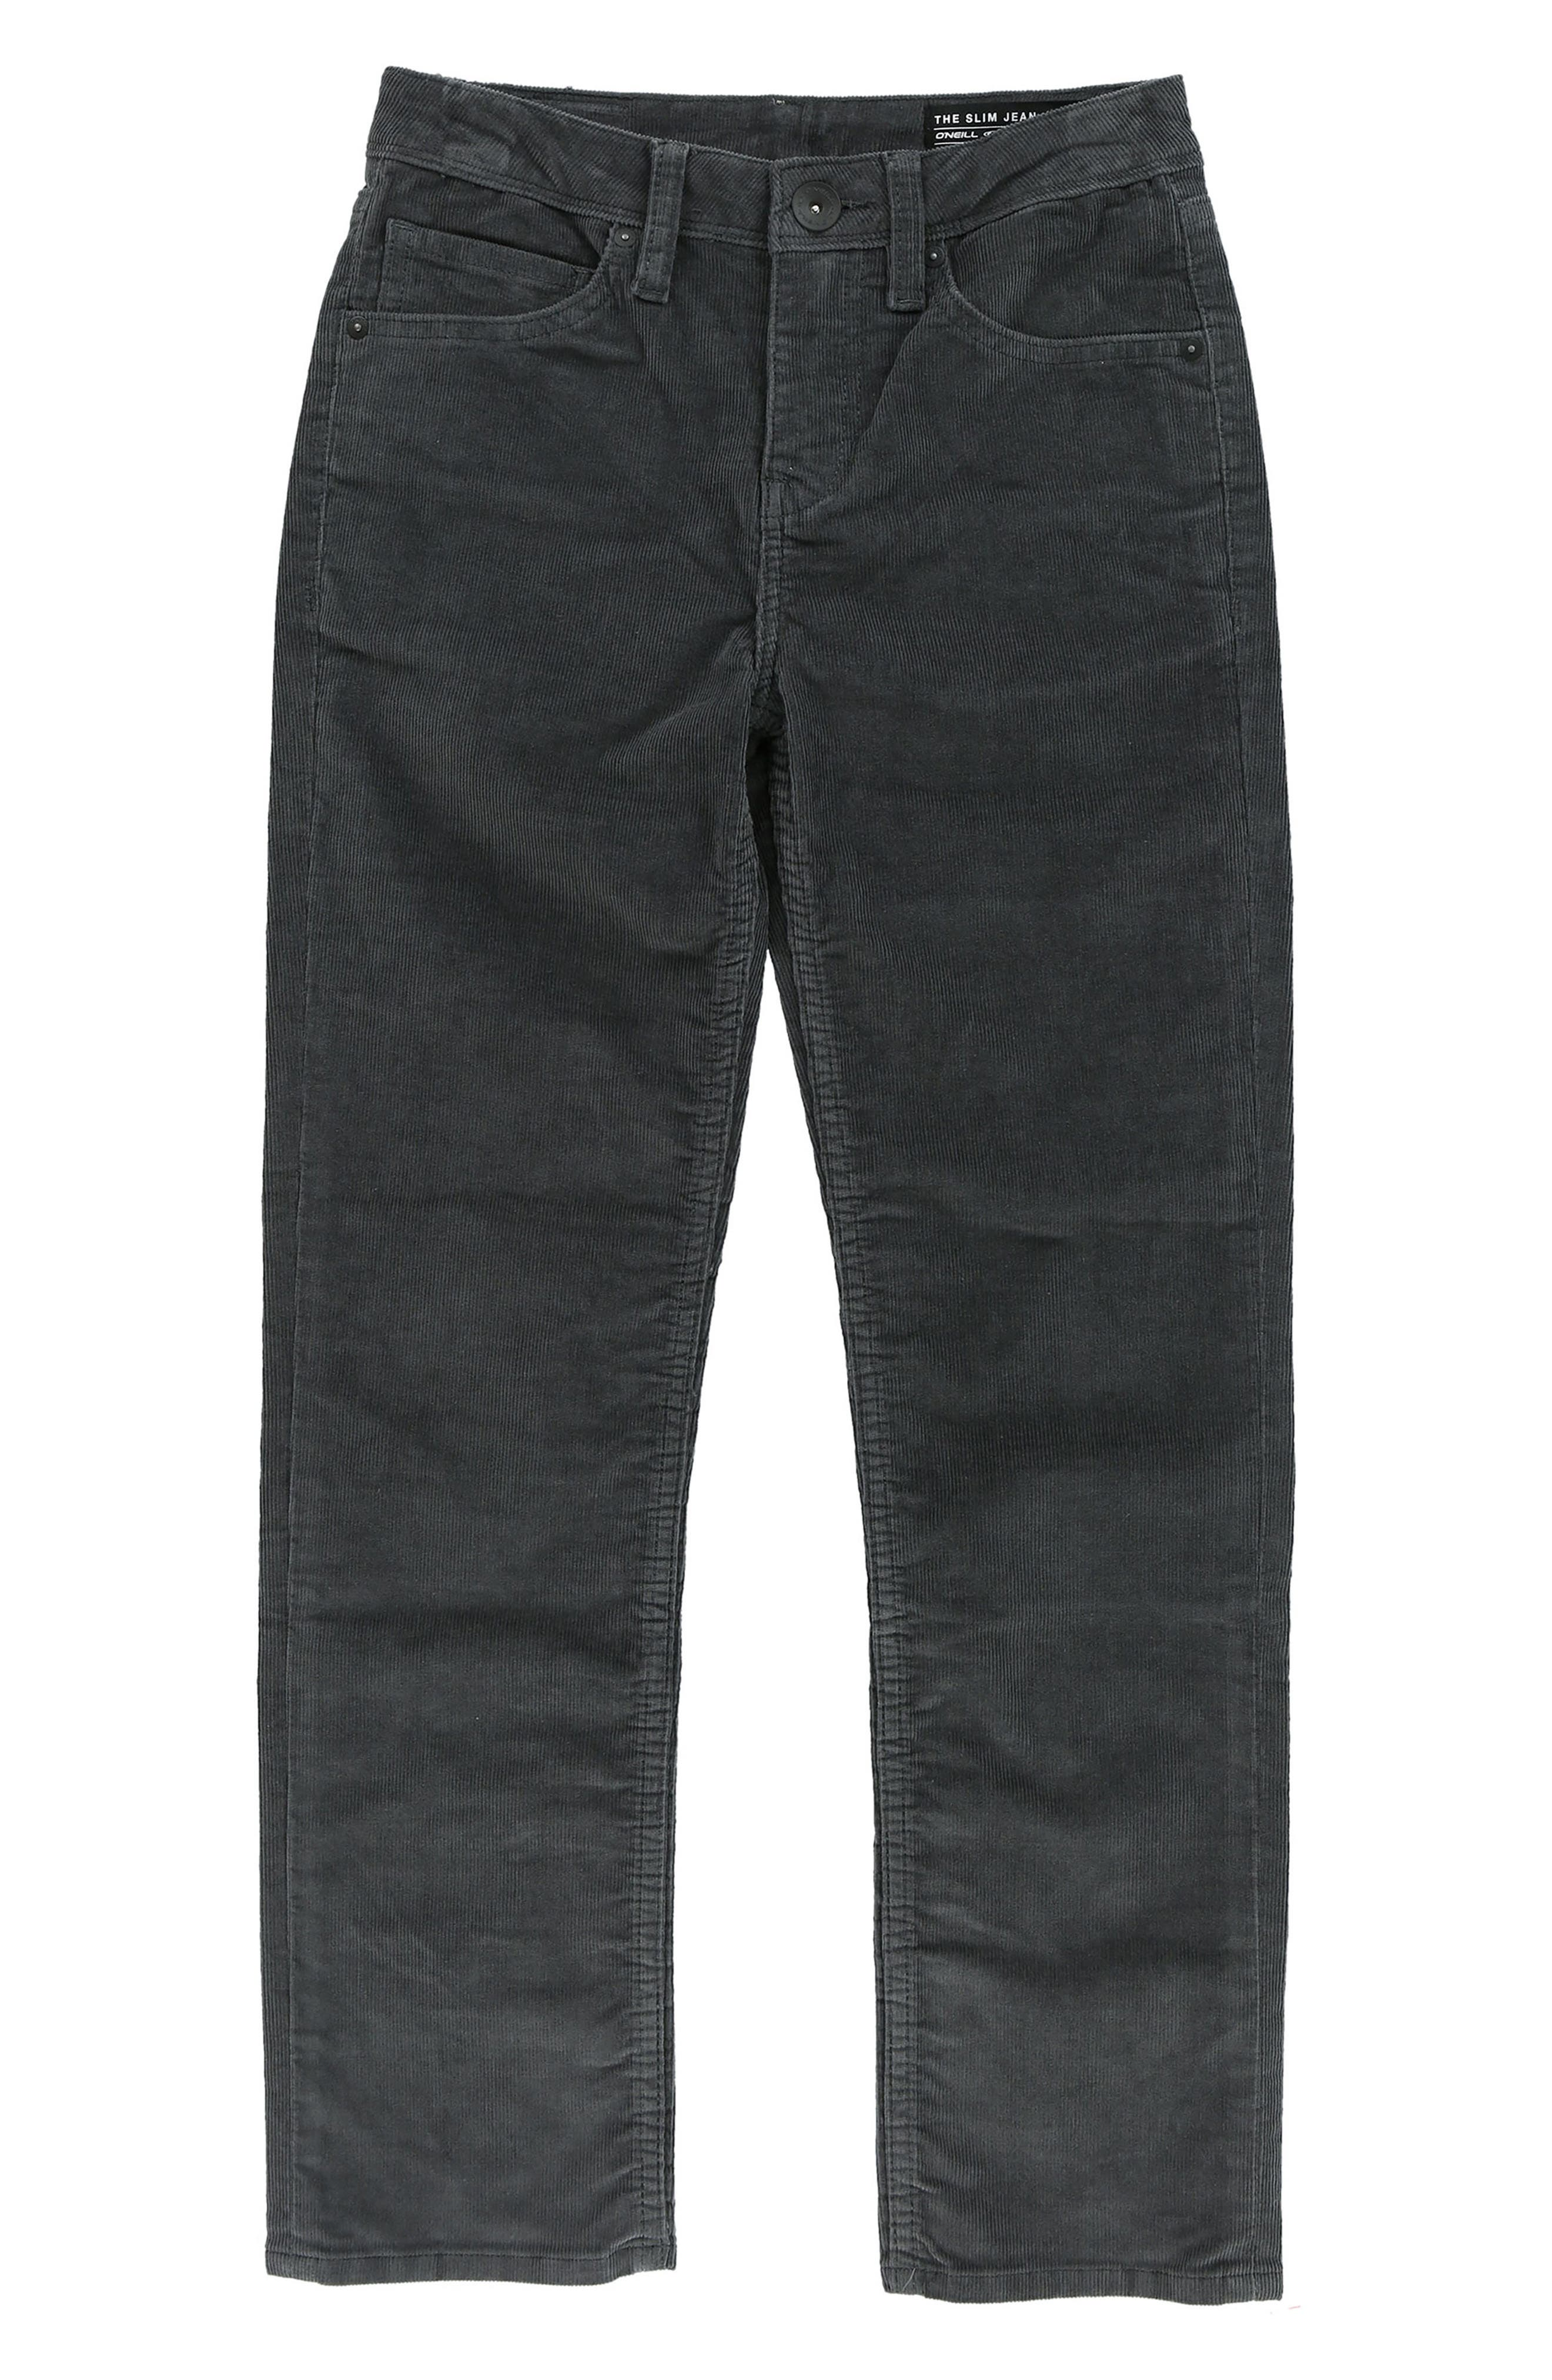 Alternate Image 1 Selected - O'Neill The Straight Corduroy Pants